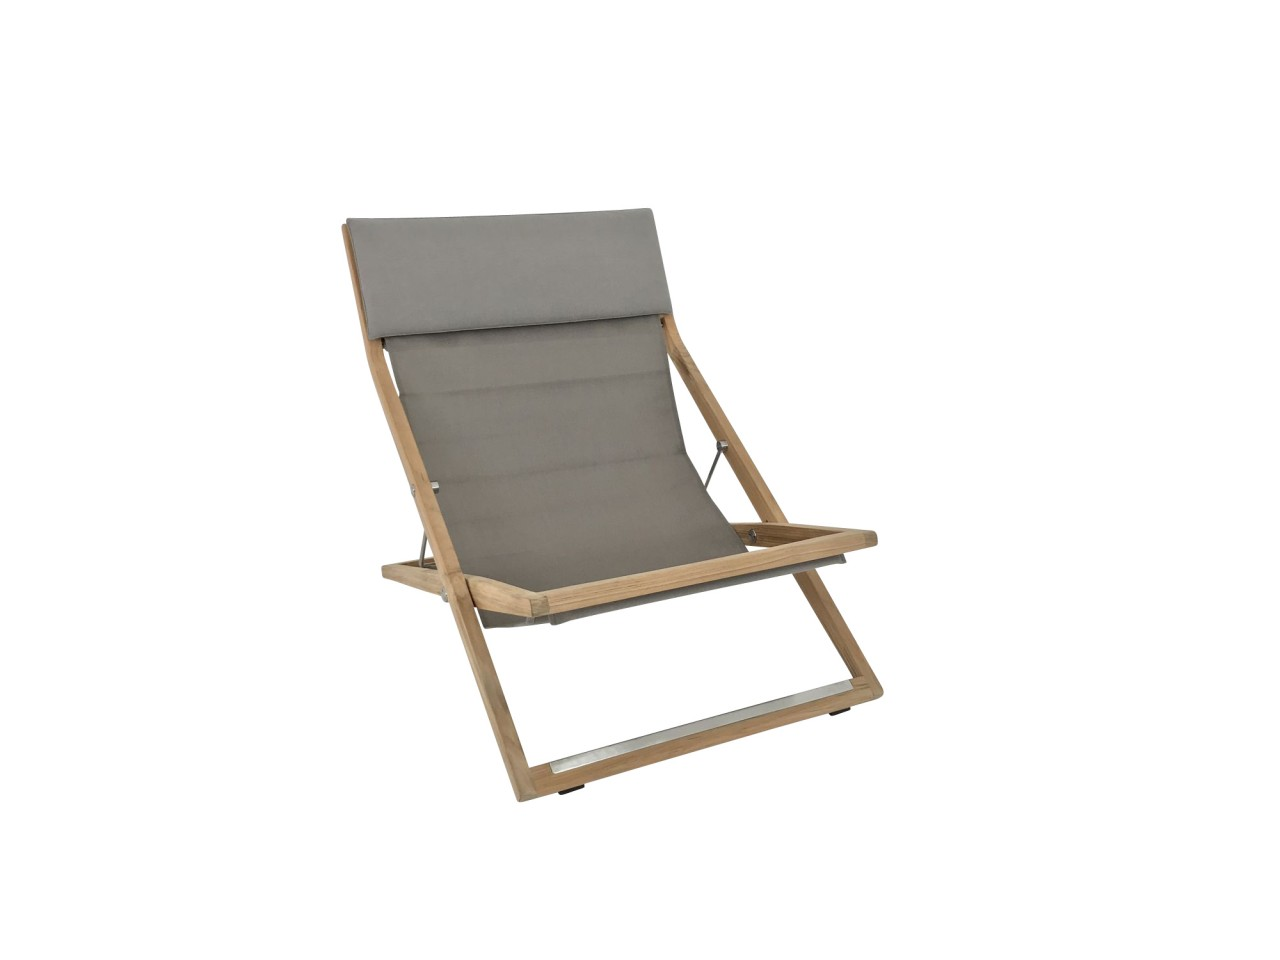 Dedon SEAYOU Deck Chair Liegestuhl in der Farbe 625 sail taupe